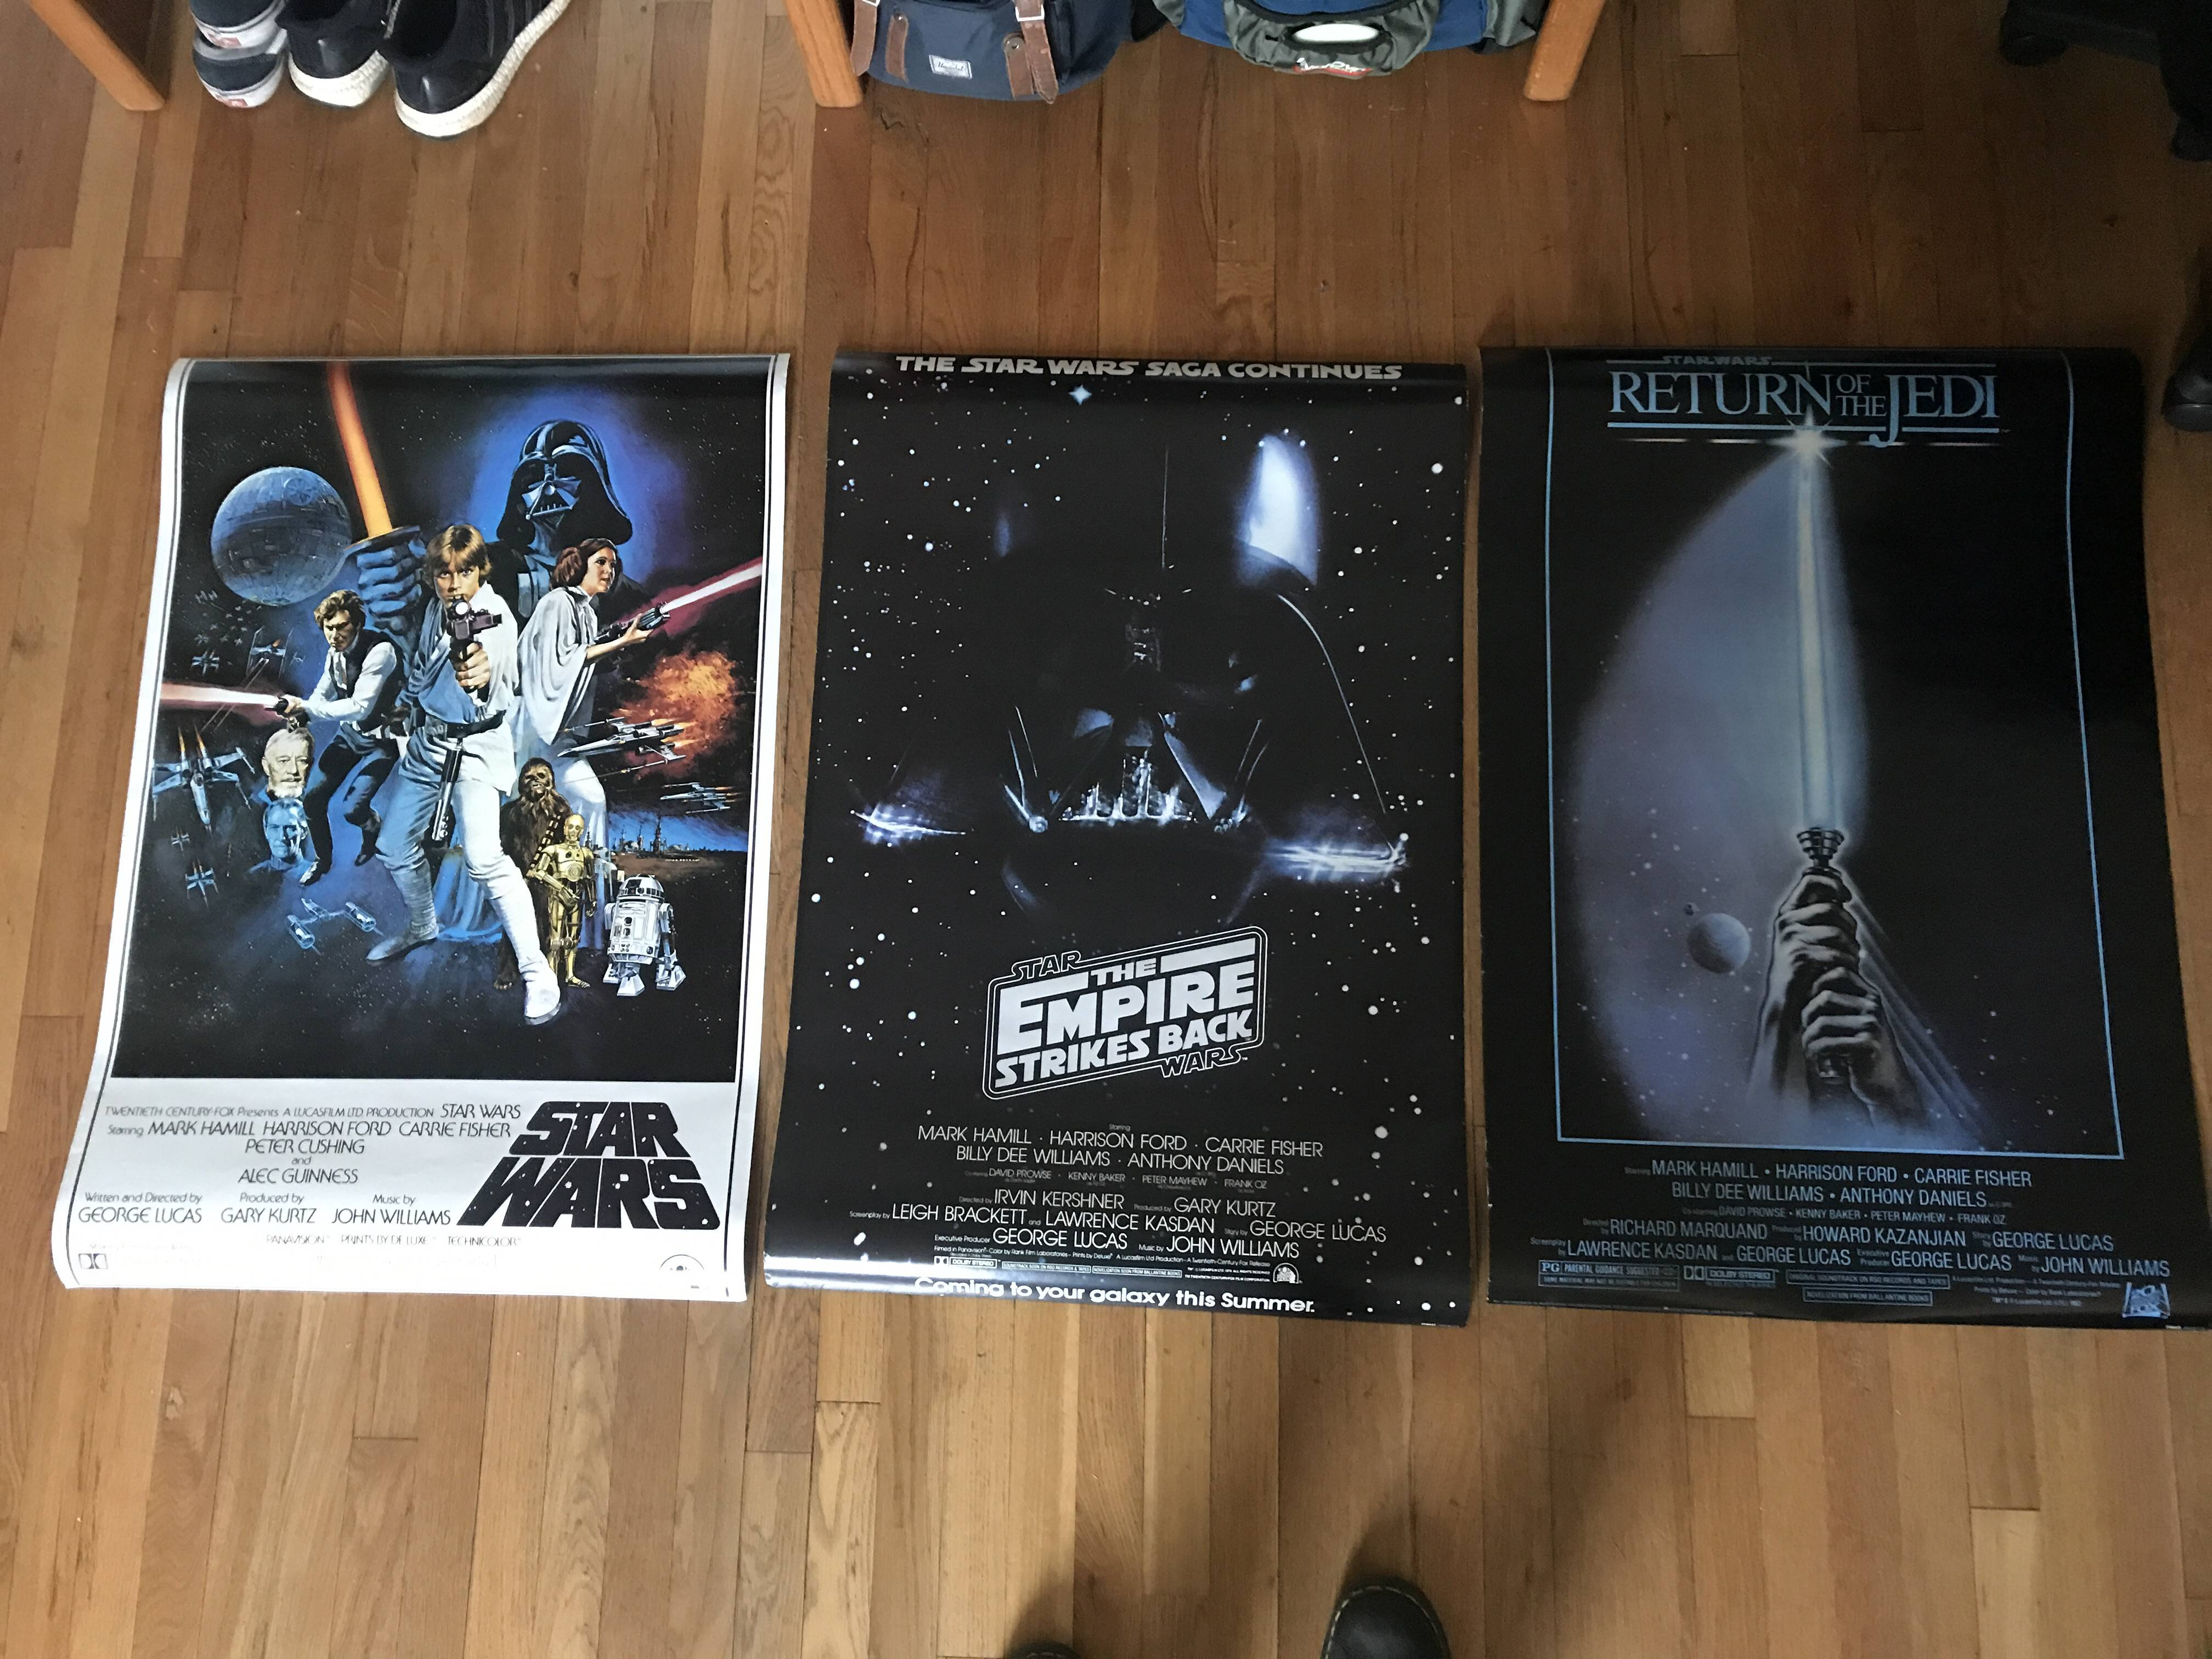 Thrifted movie posters of the first trilogy. All originals from 70-80s in near perfect condition.